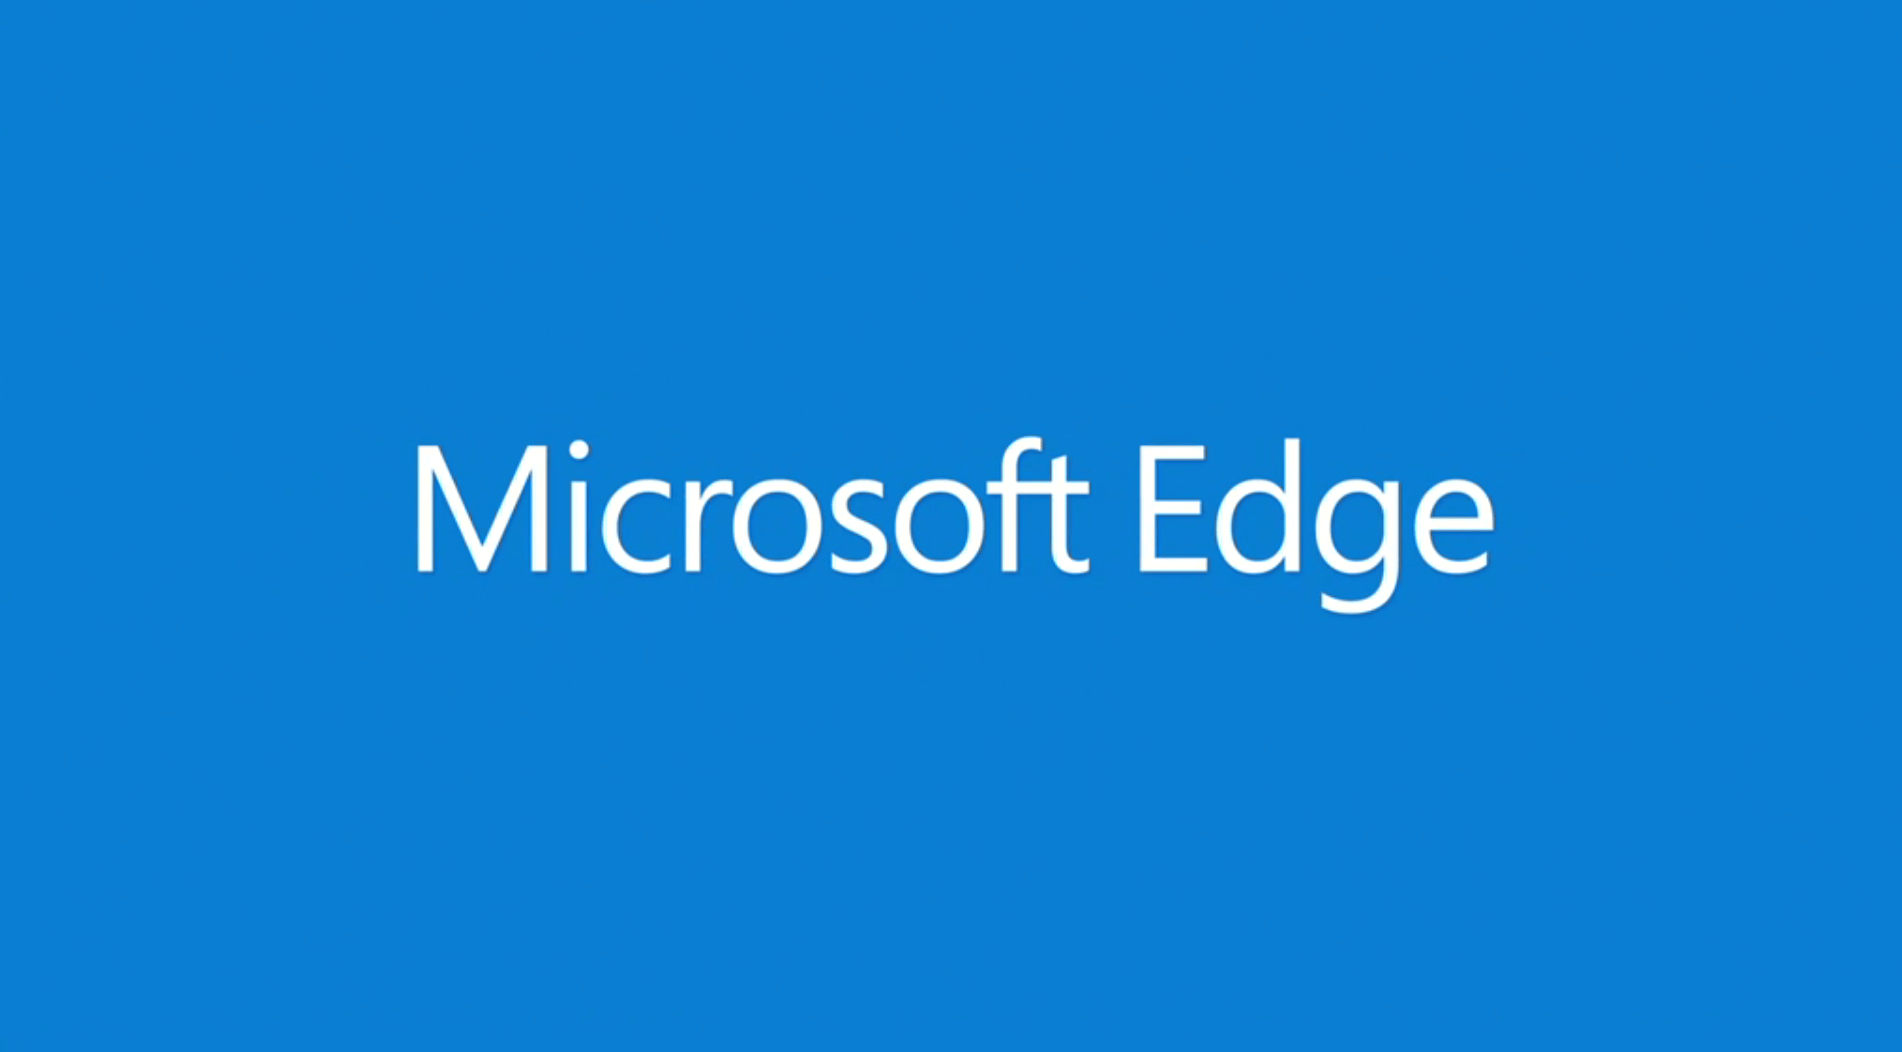 Microsoft Edge Is The New Default Browser For Windows 10